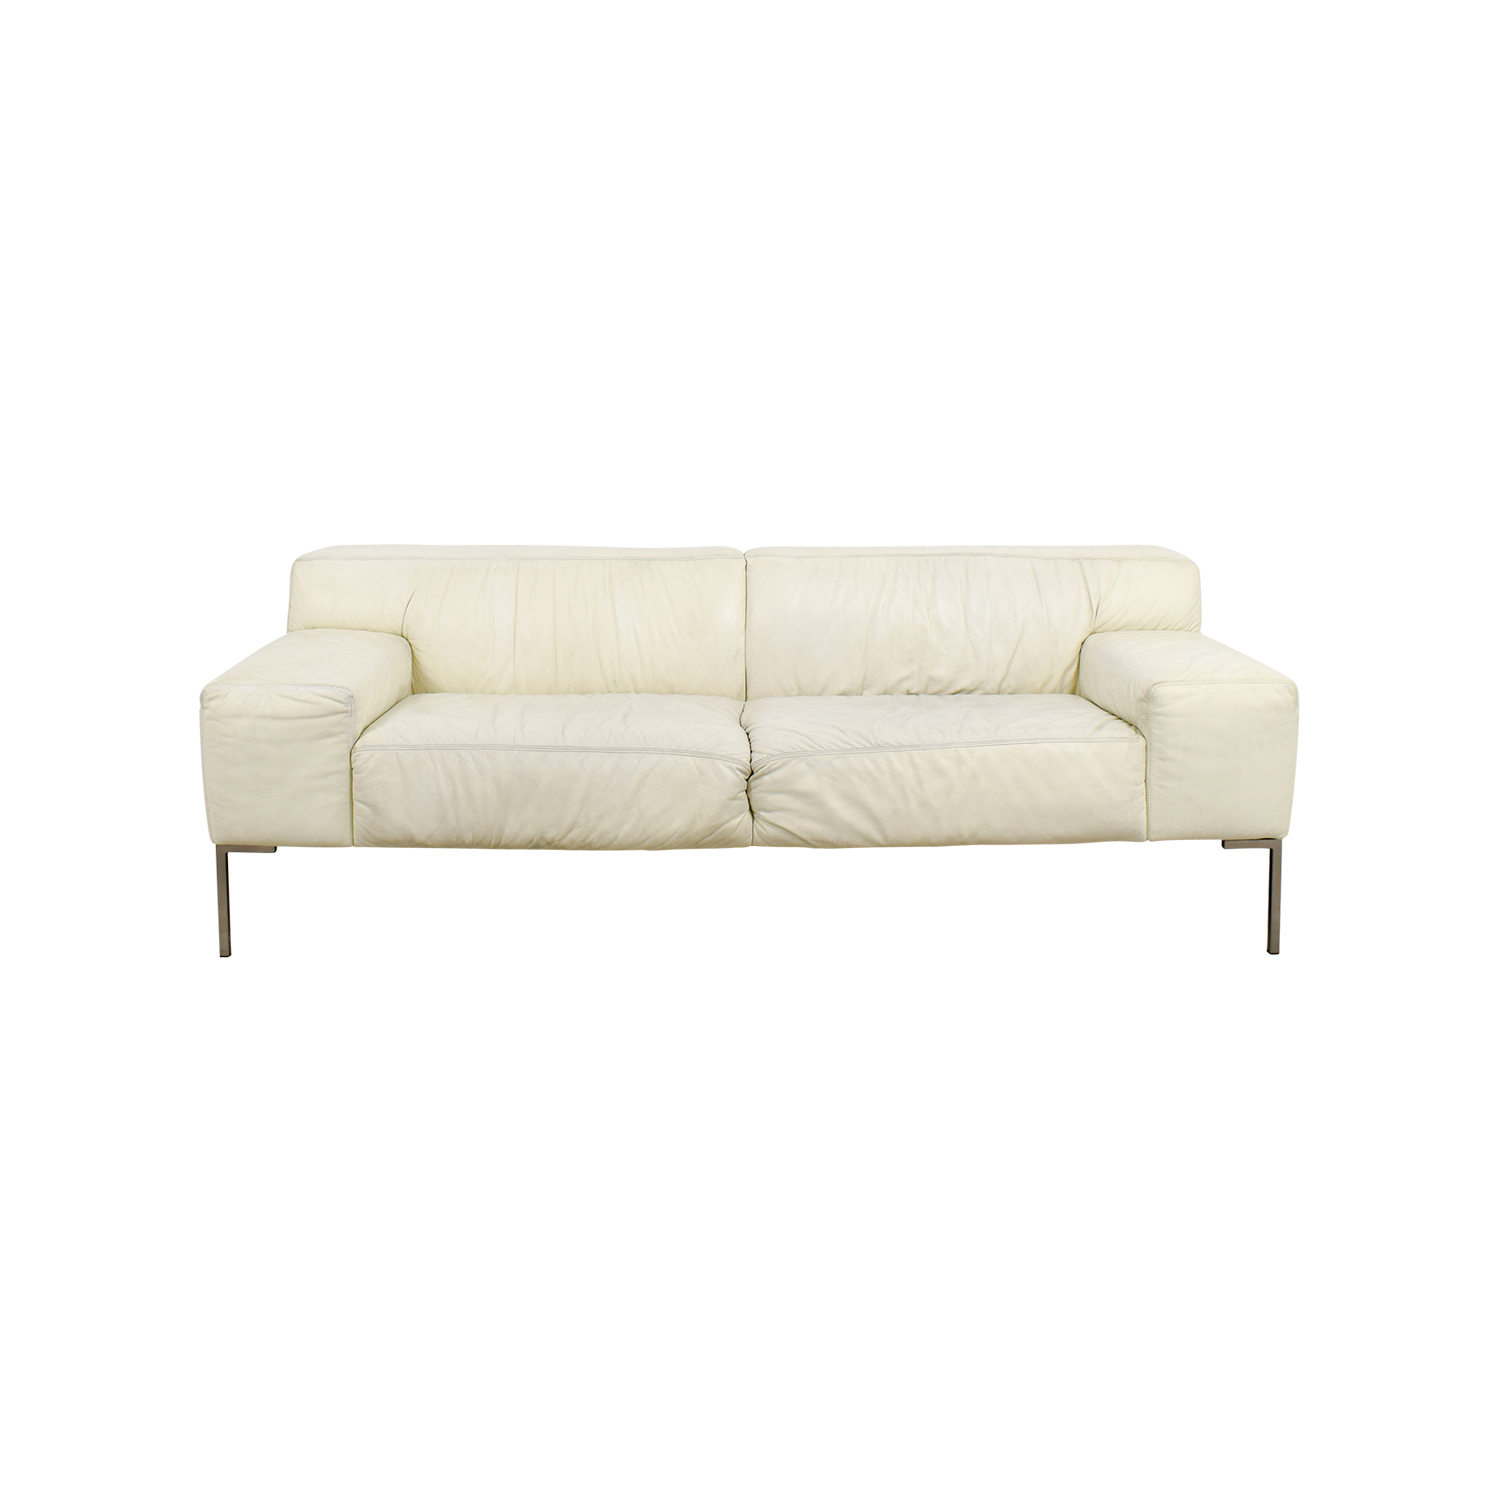 Jensen Lewis American Leather Tuscan White Sofa Price